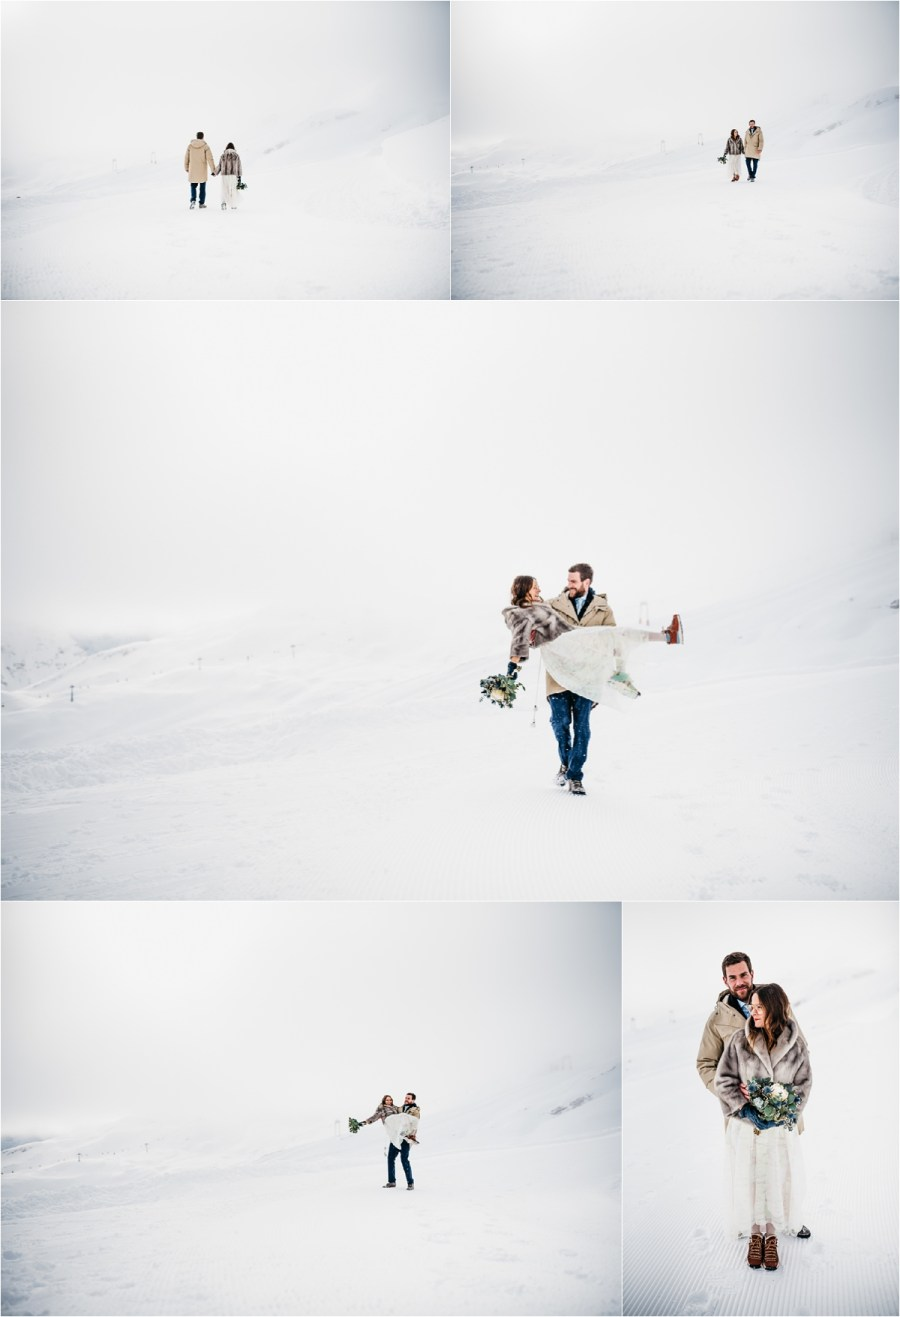 The bride and groom have fun in the snow after their winter wedding on the Zugspitze by Aneta Lehotska